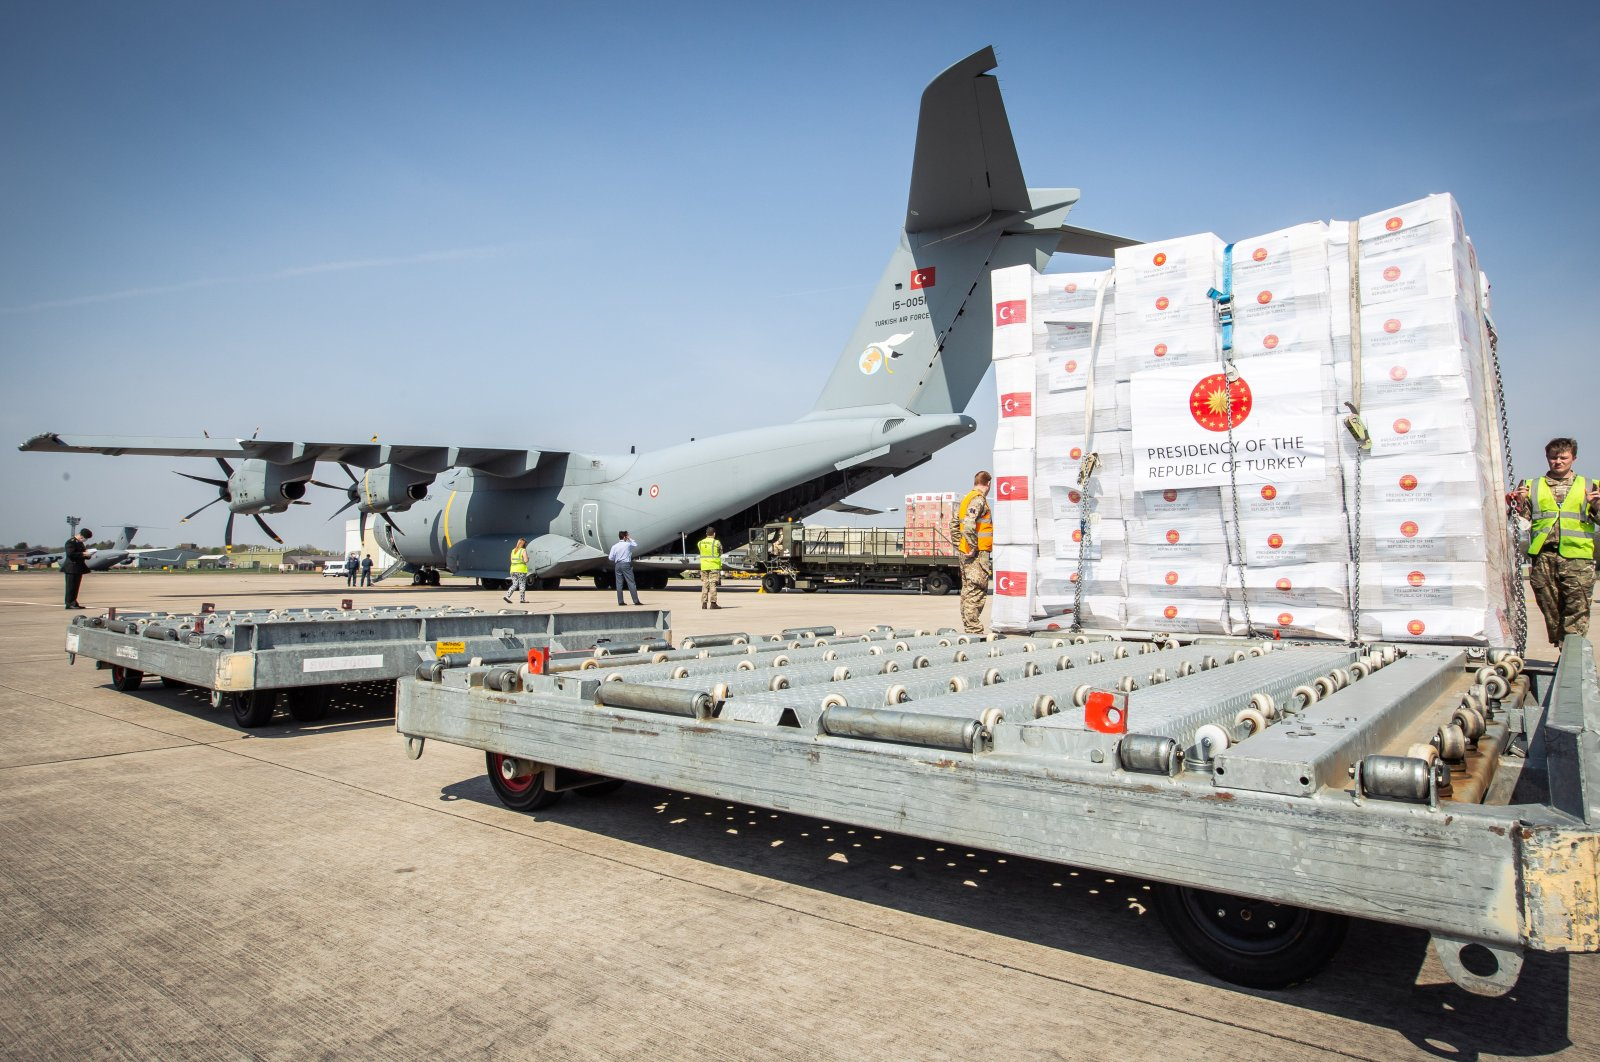 Crucial supplies of personal protective equipment (PPE) for medical staff are delivered from Turkey into a Royal Air Force base for distribution around the country, amid the coronavirus disease (COVID-19) outbreak, in Carterton, Britain, Friday, April 10, 2020.